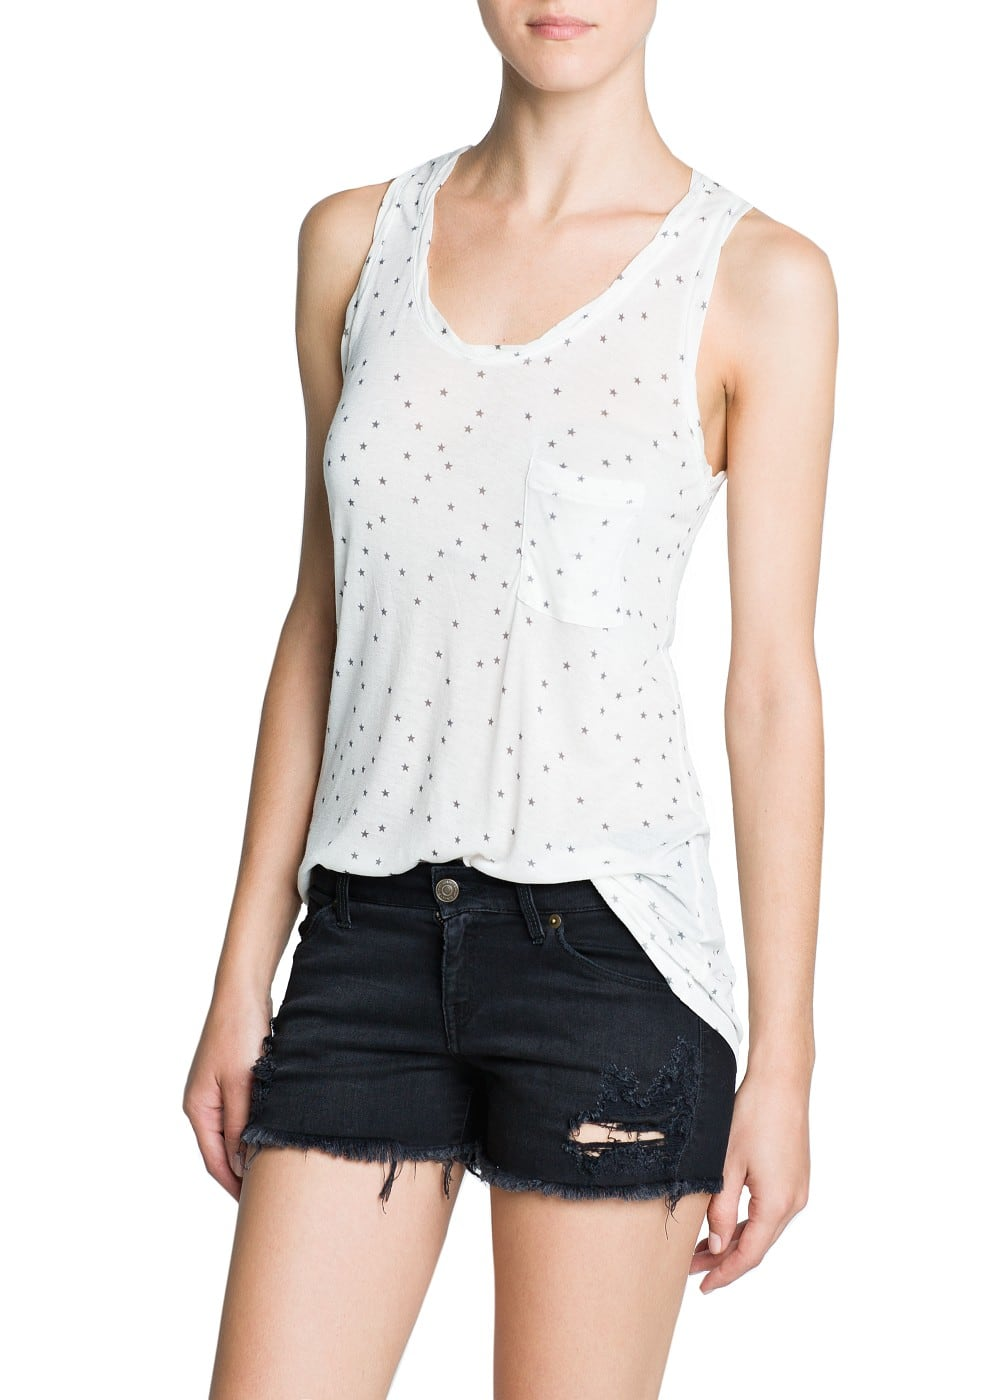 Star print flowy top